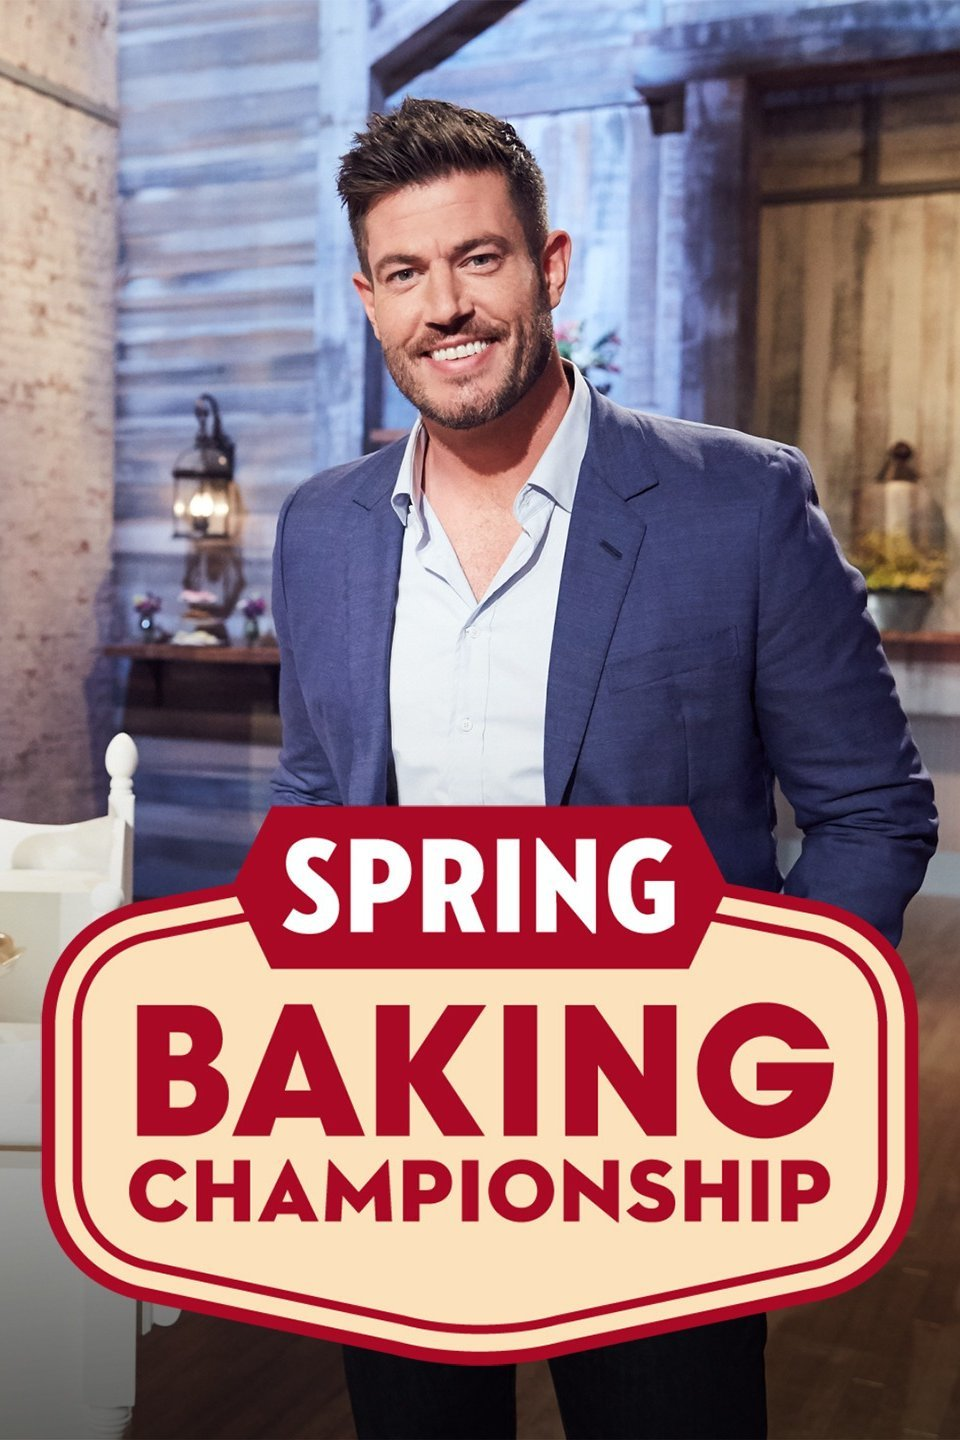 Spring Baking Championship - Alchetron, the free social encyclopedia